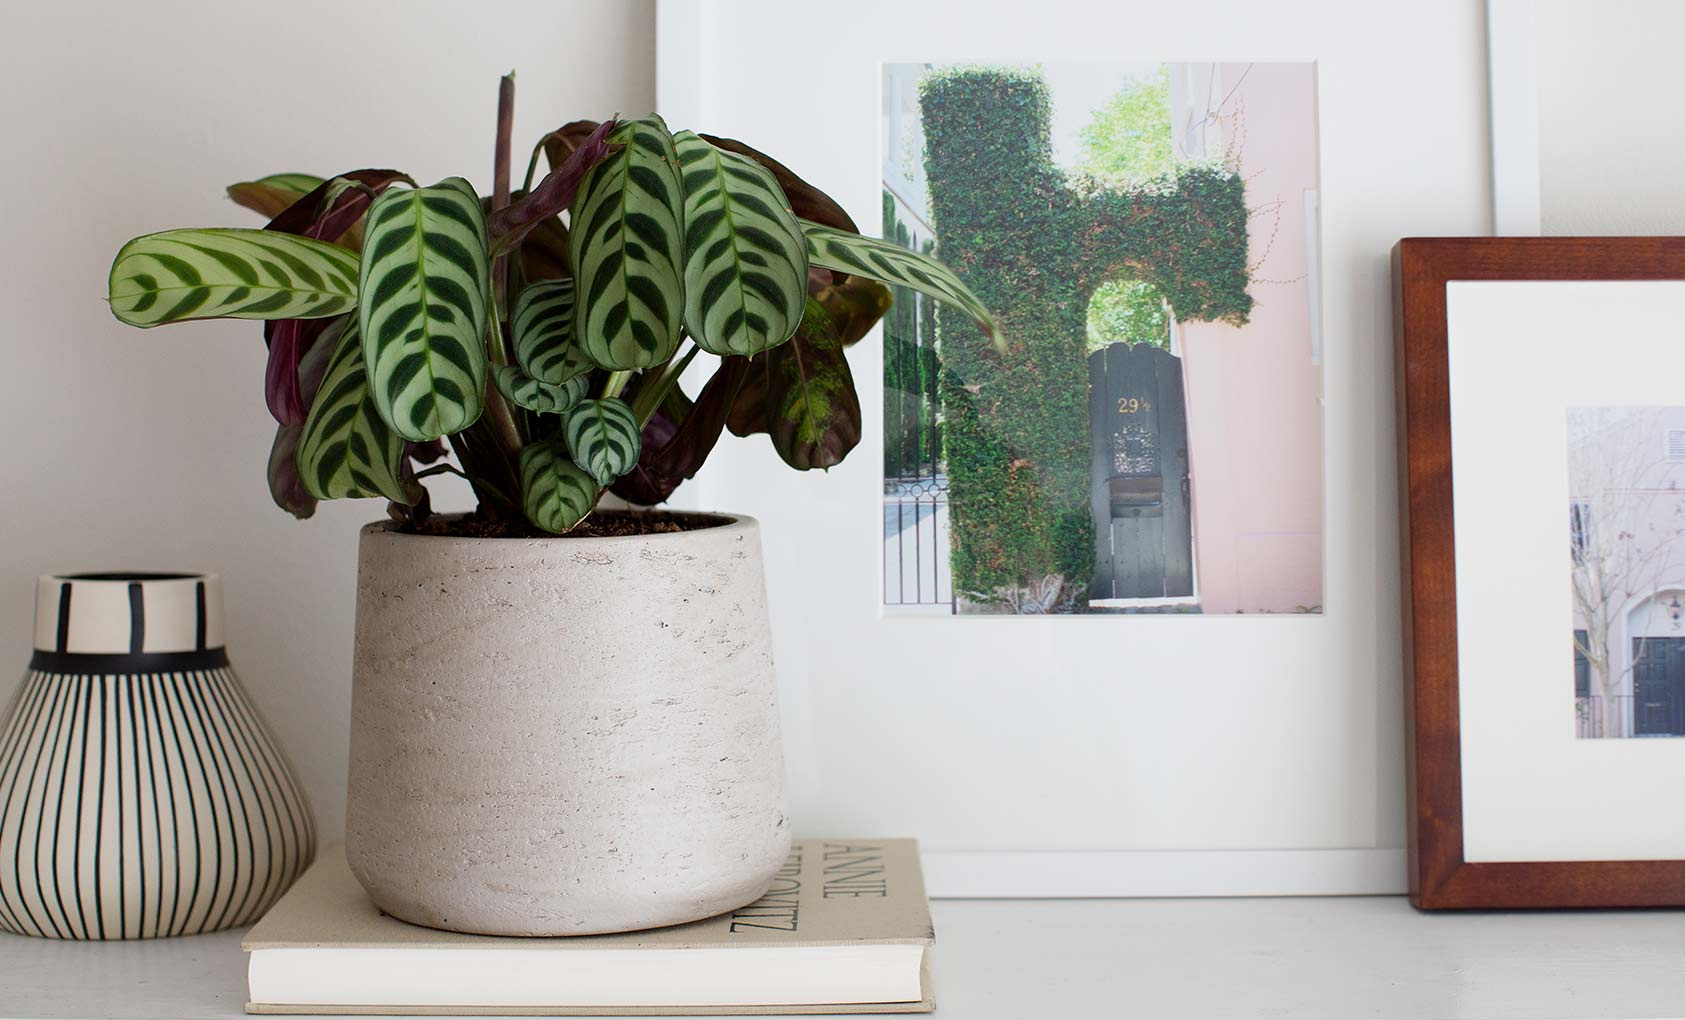 10 Pet-Safe Houseplants, Design*Sponge